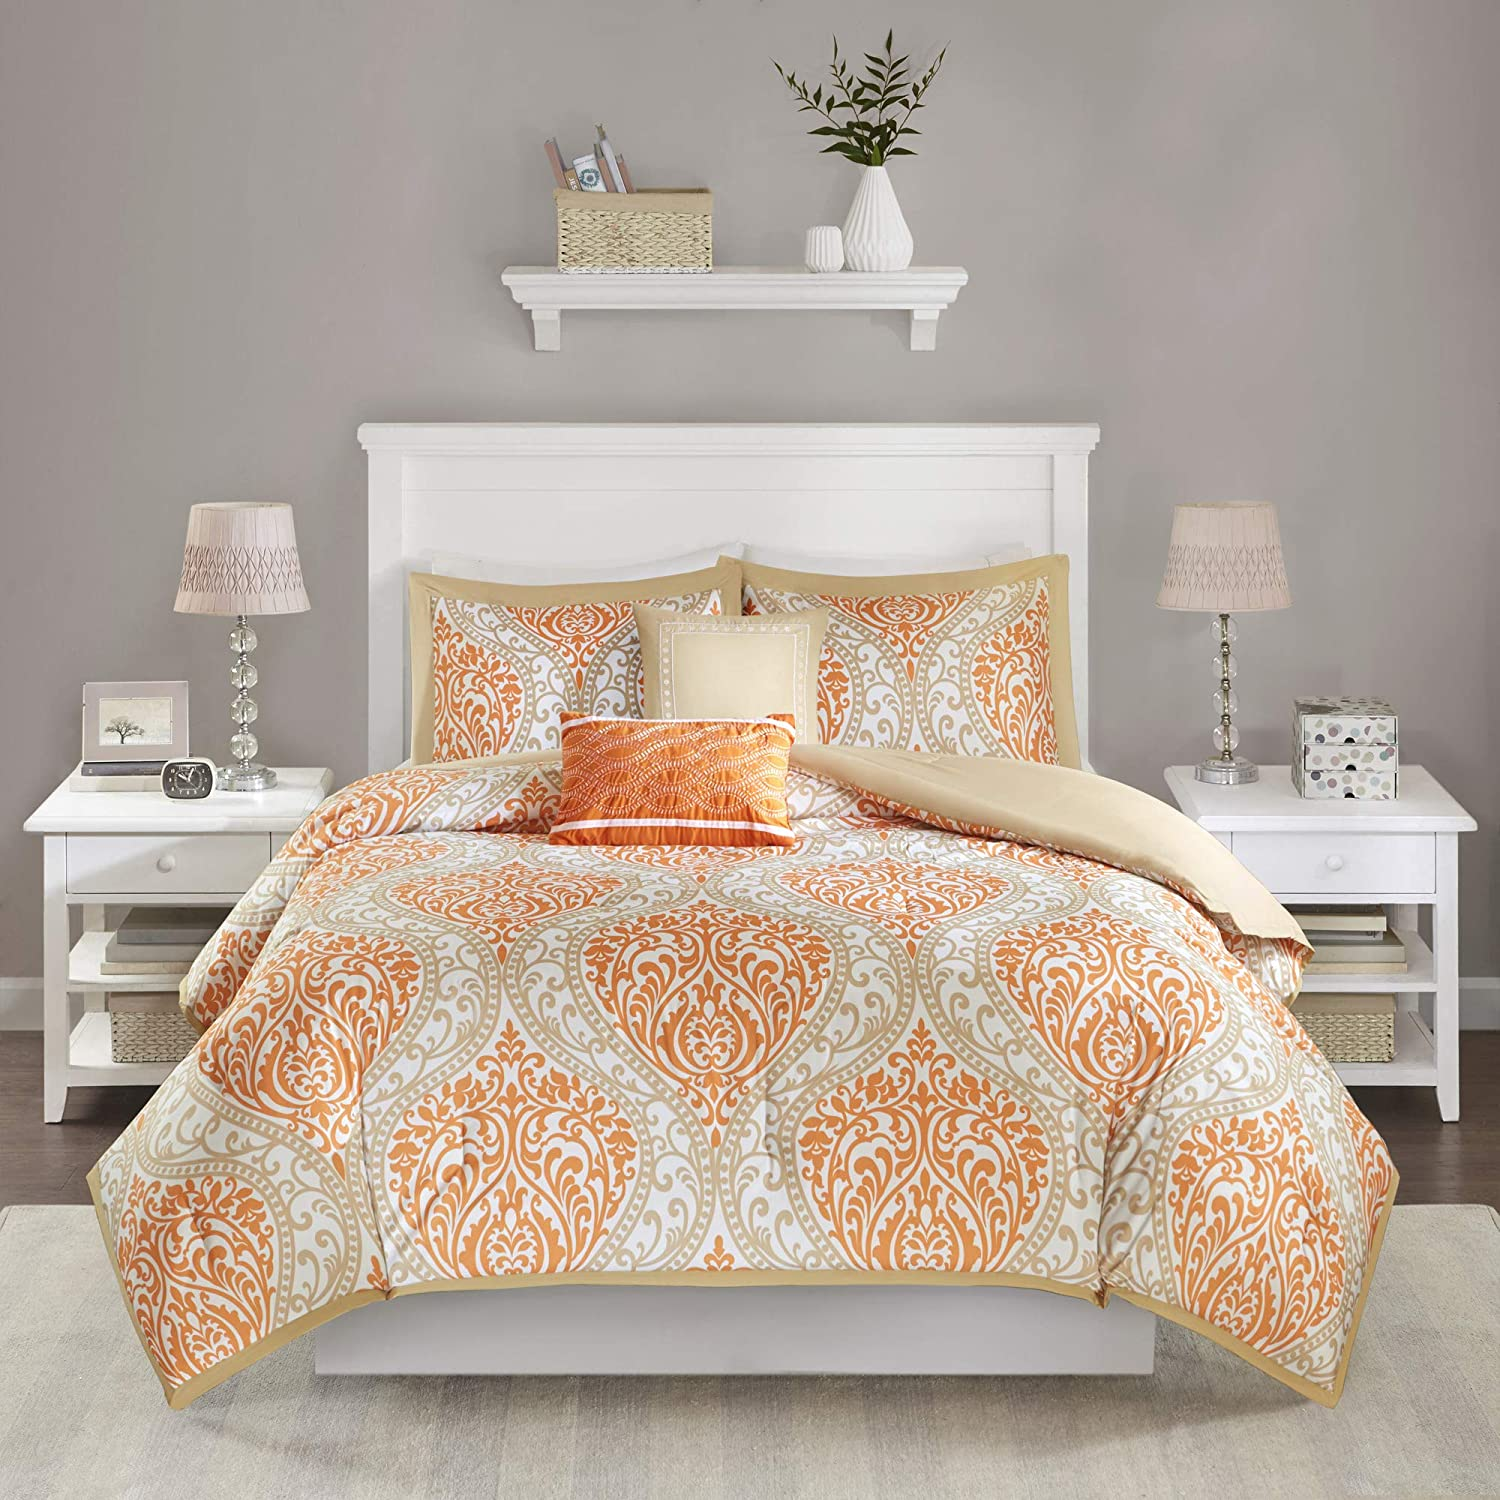 Amazon Com Intelligent Design Id10 001 Senna Comforter Set Twin Twin Xl Size Orange Taupe Damask 4 Piece Bed Sets All Season Ultra Soft Microfiber Teen Bedding Great For Dorm Room And